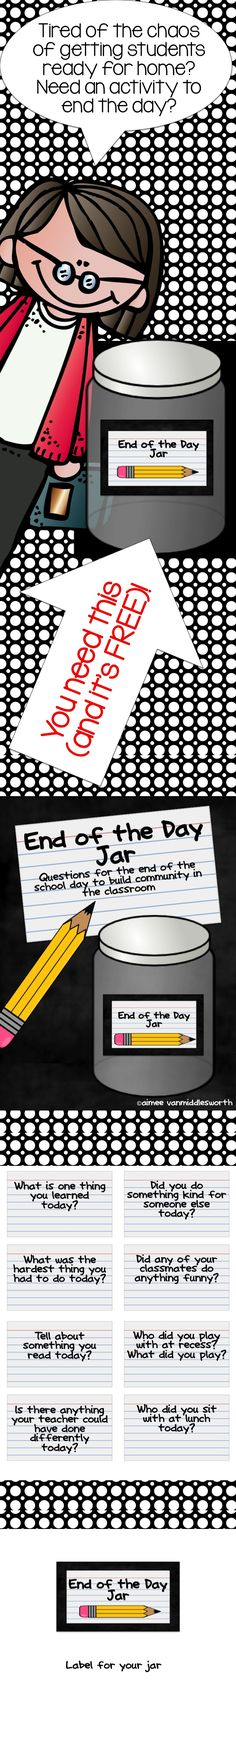 The End of the Day jar (FREE!)